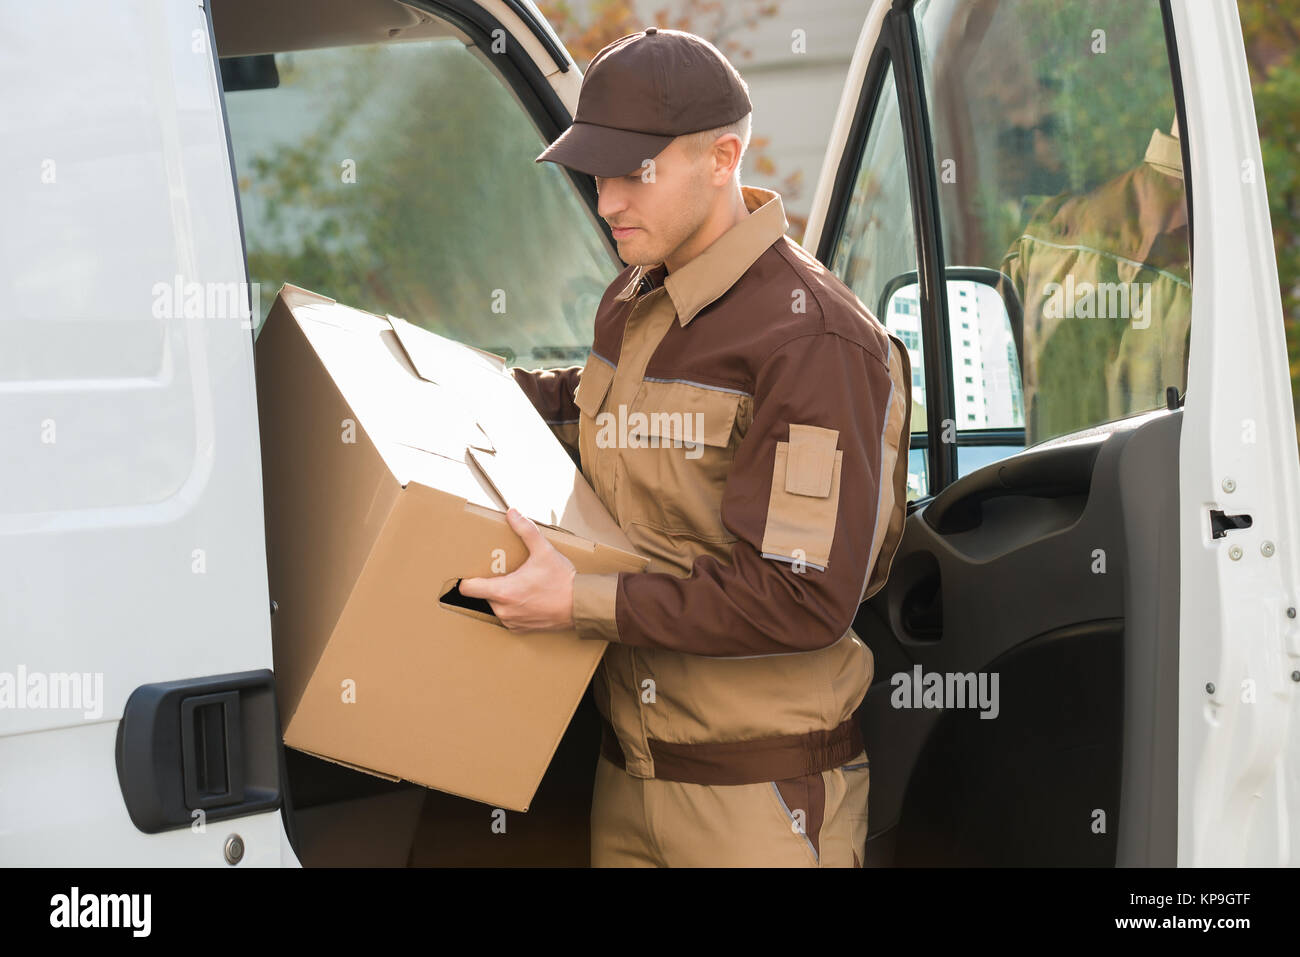 Delivery Man Removing Cardboard Box From Truck - Stock Image